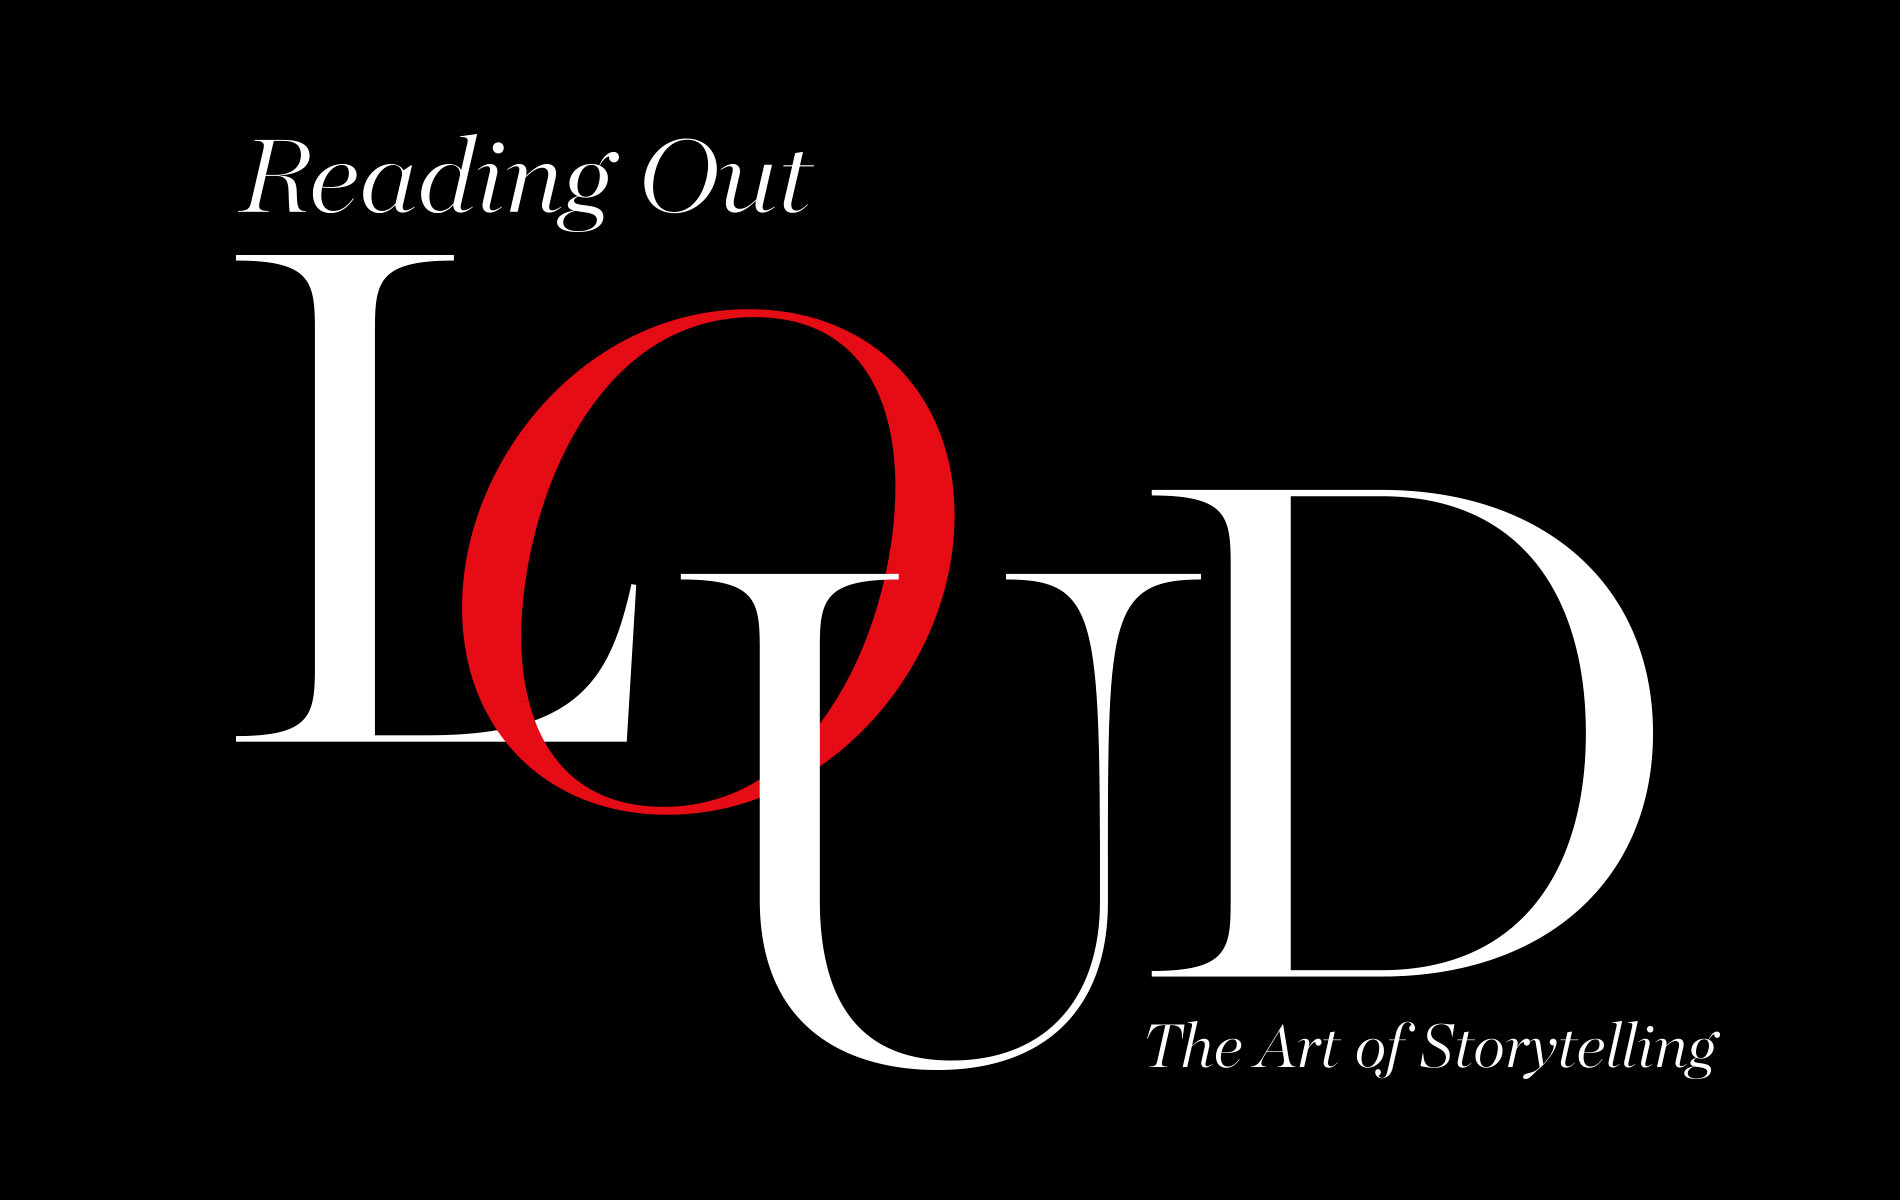 Reading out Loud by Nick Racheotes Inspirational Column VIE Magazine 2017